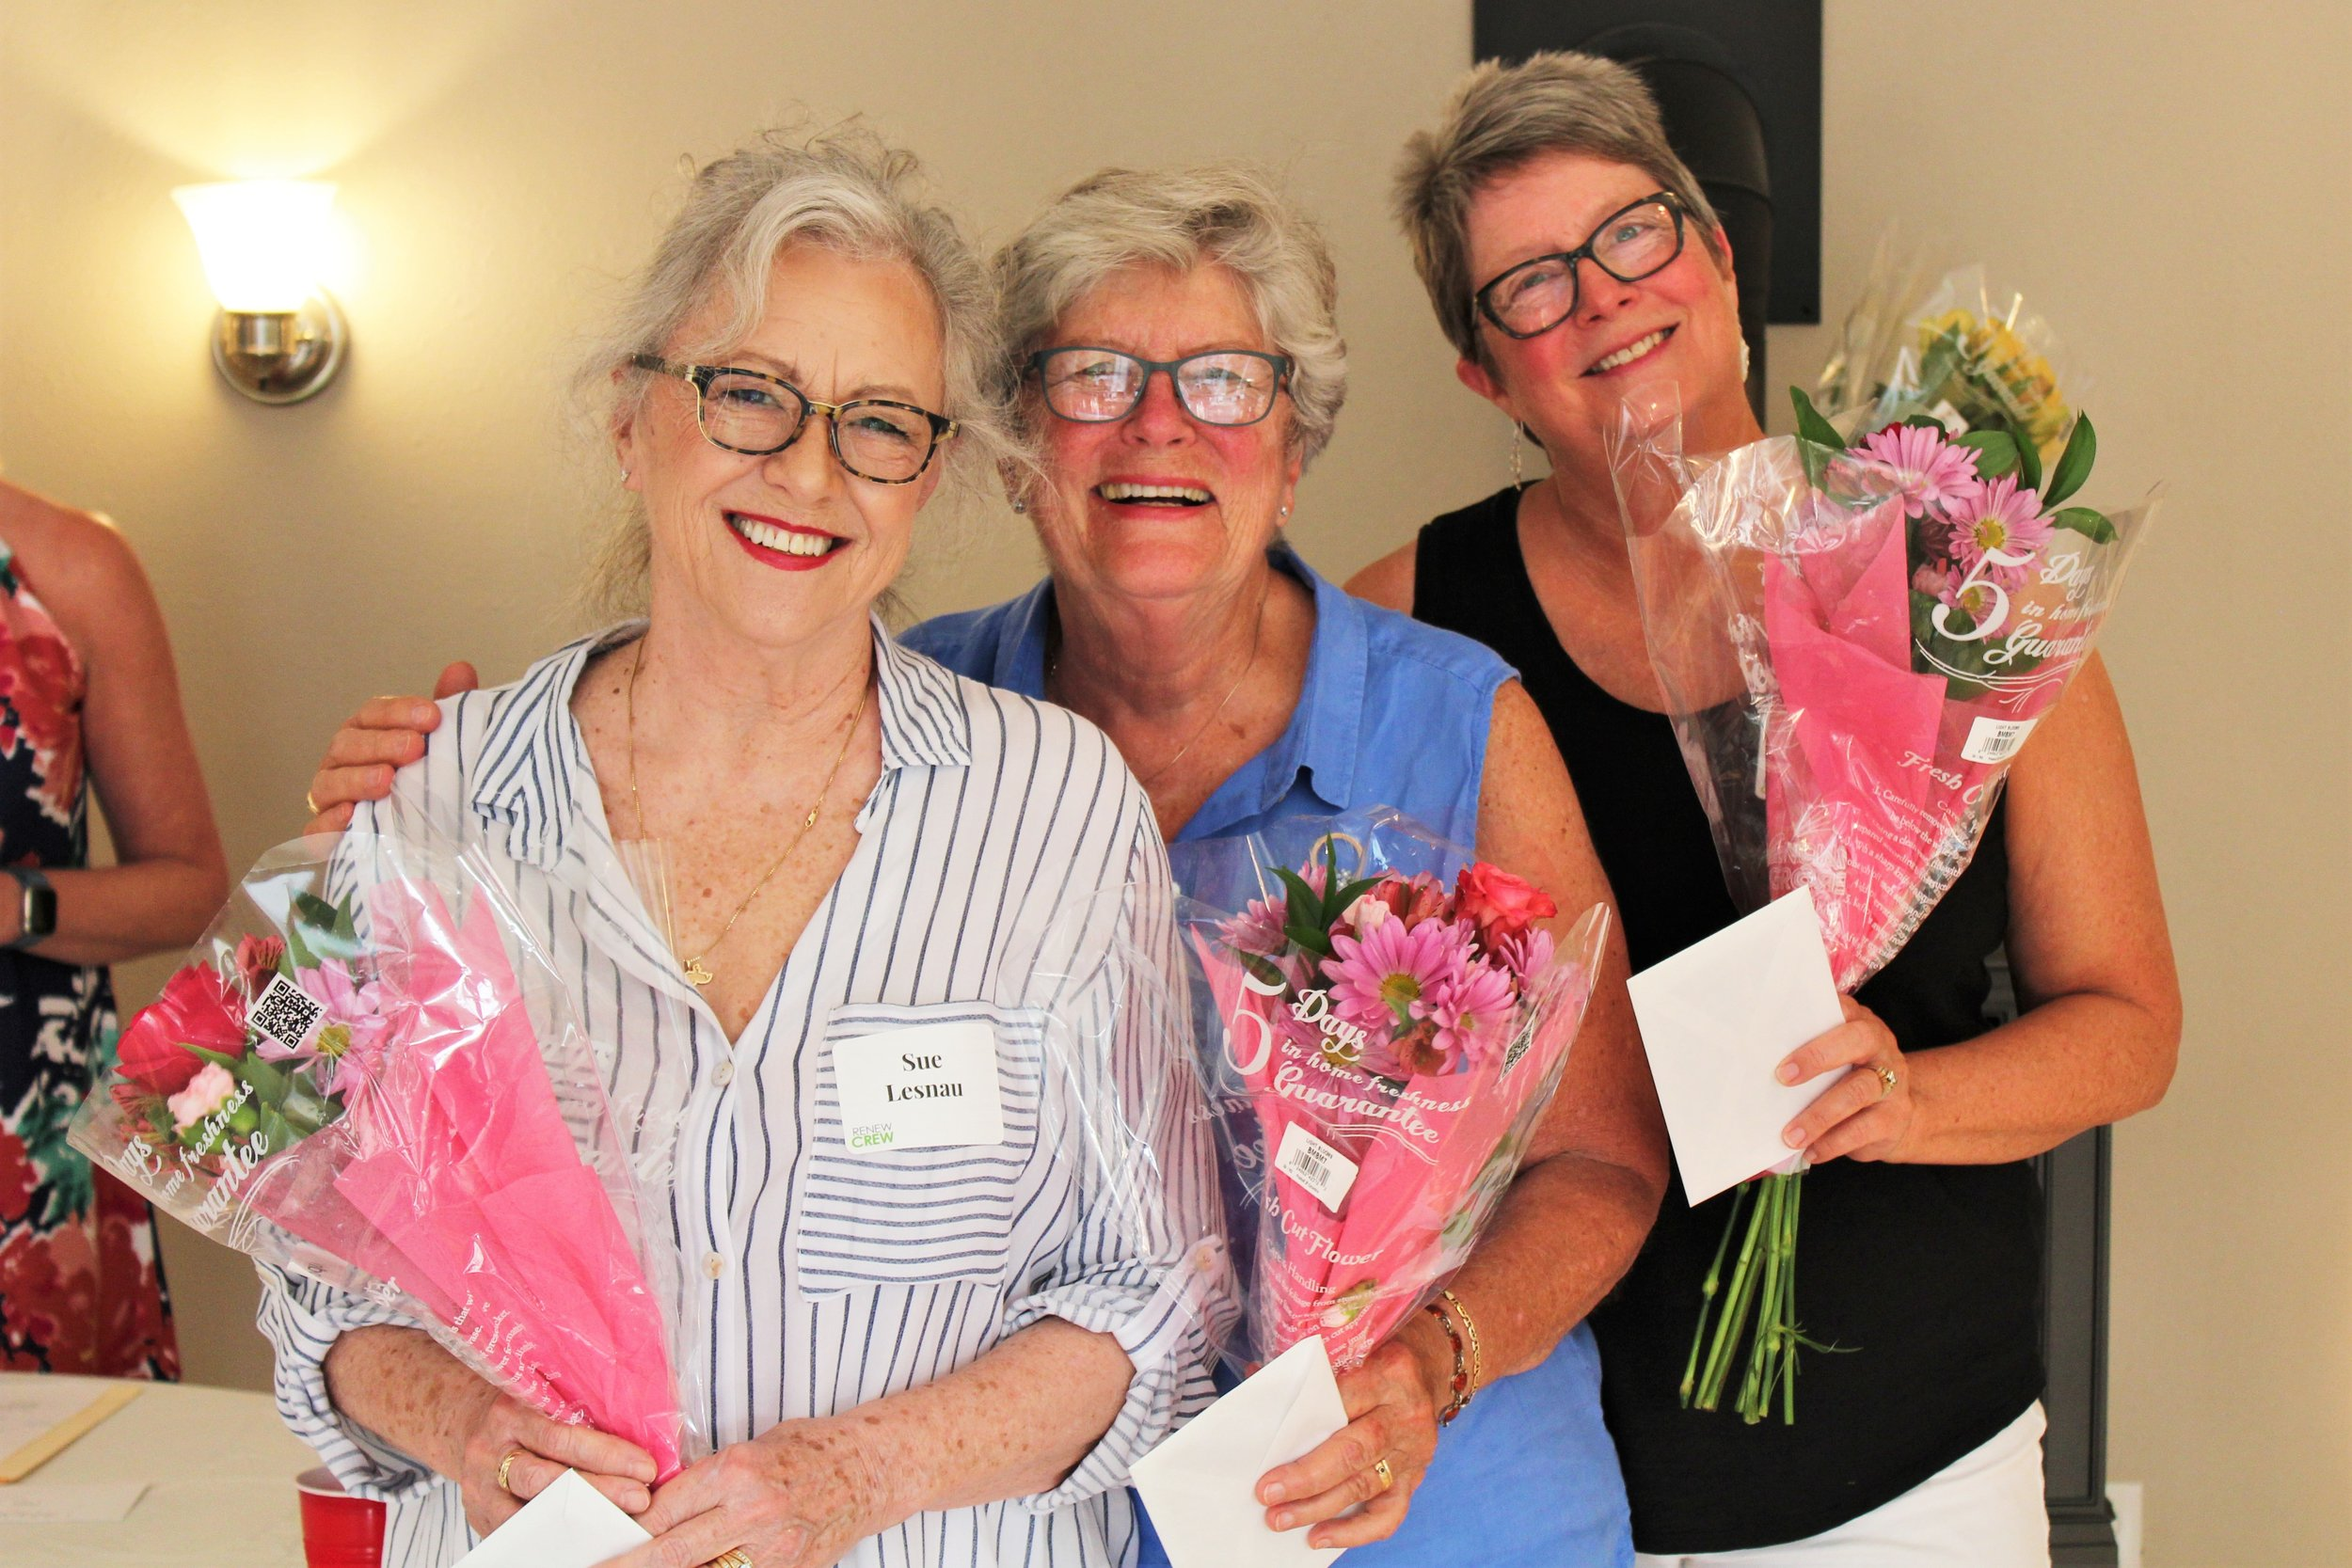 Front desk volunteers Sue Lesnau, Boni Jensen, and Kim Bates were recognized for their ongoing support and talent.